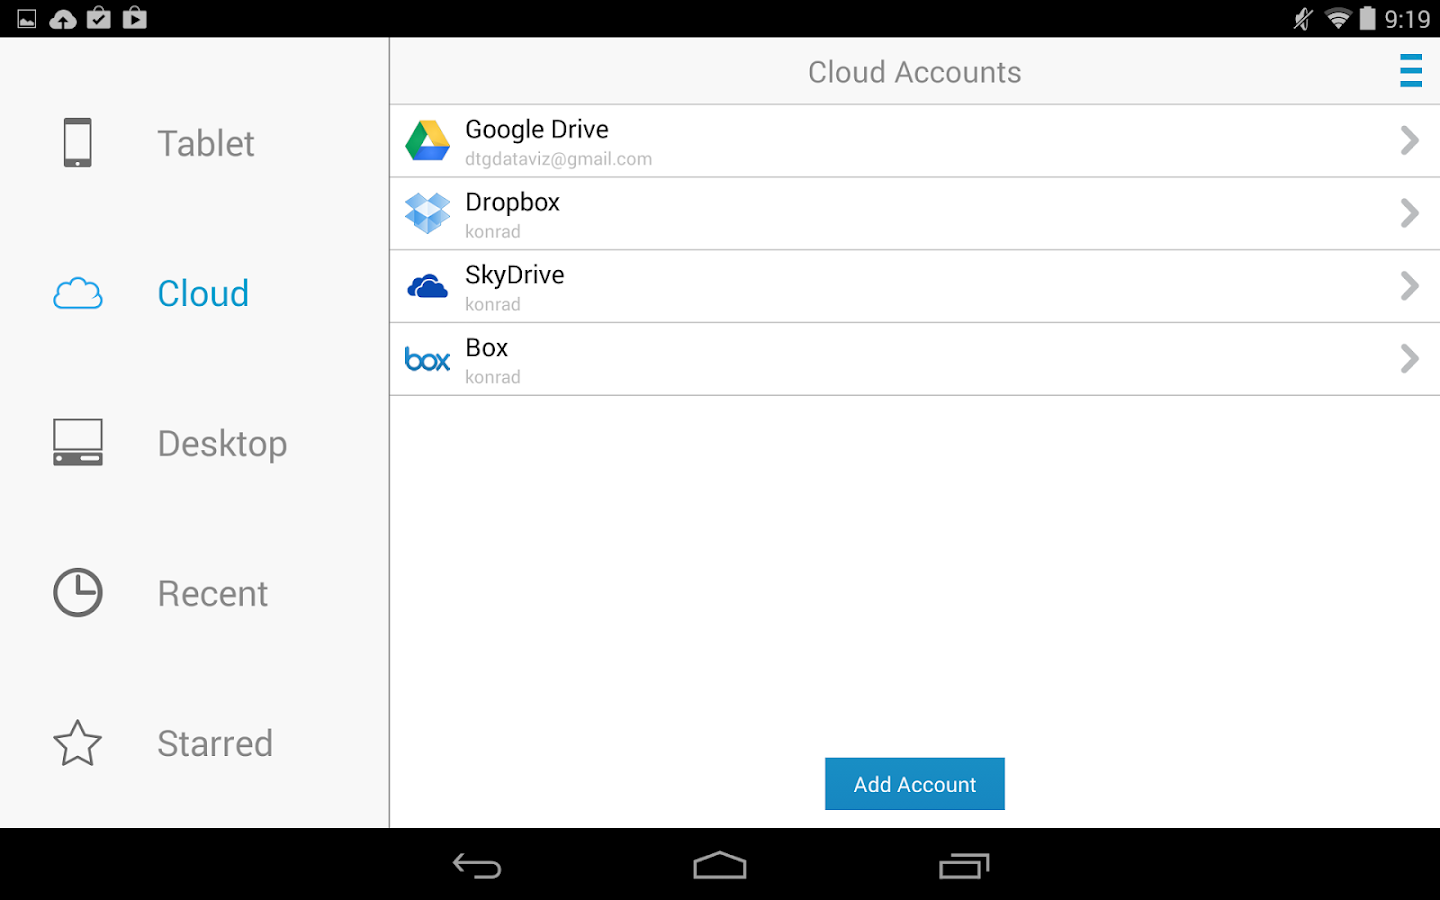 Docs to gotm free office suite android apps on google play for Documents to go manual